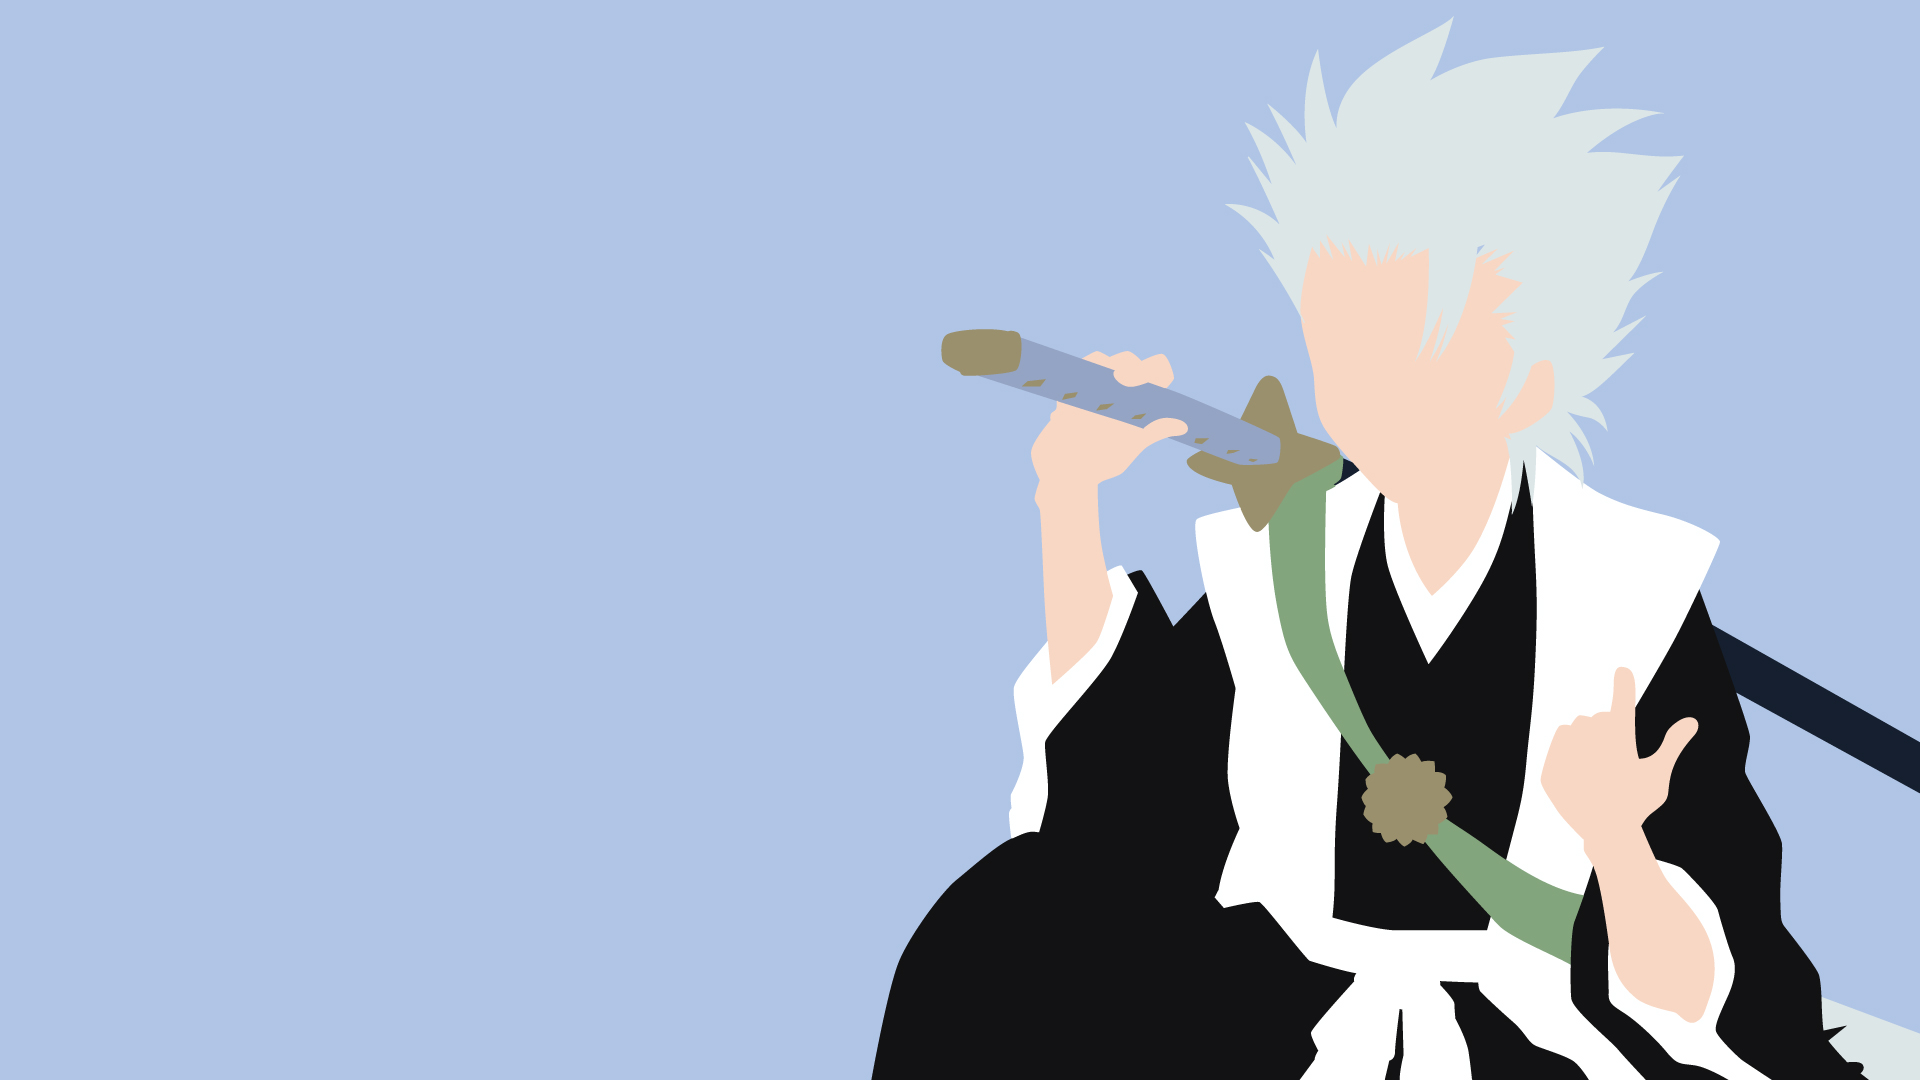 Hitsugaya Toshiro Bleach Minimalistic Wallpaper by ...